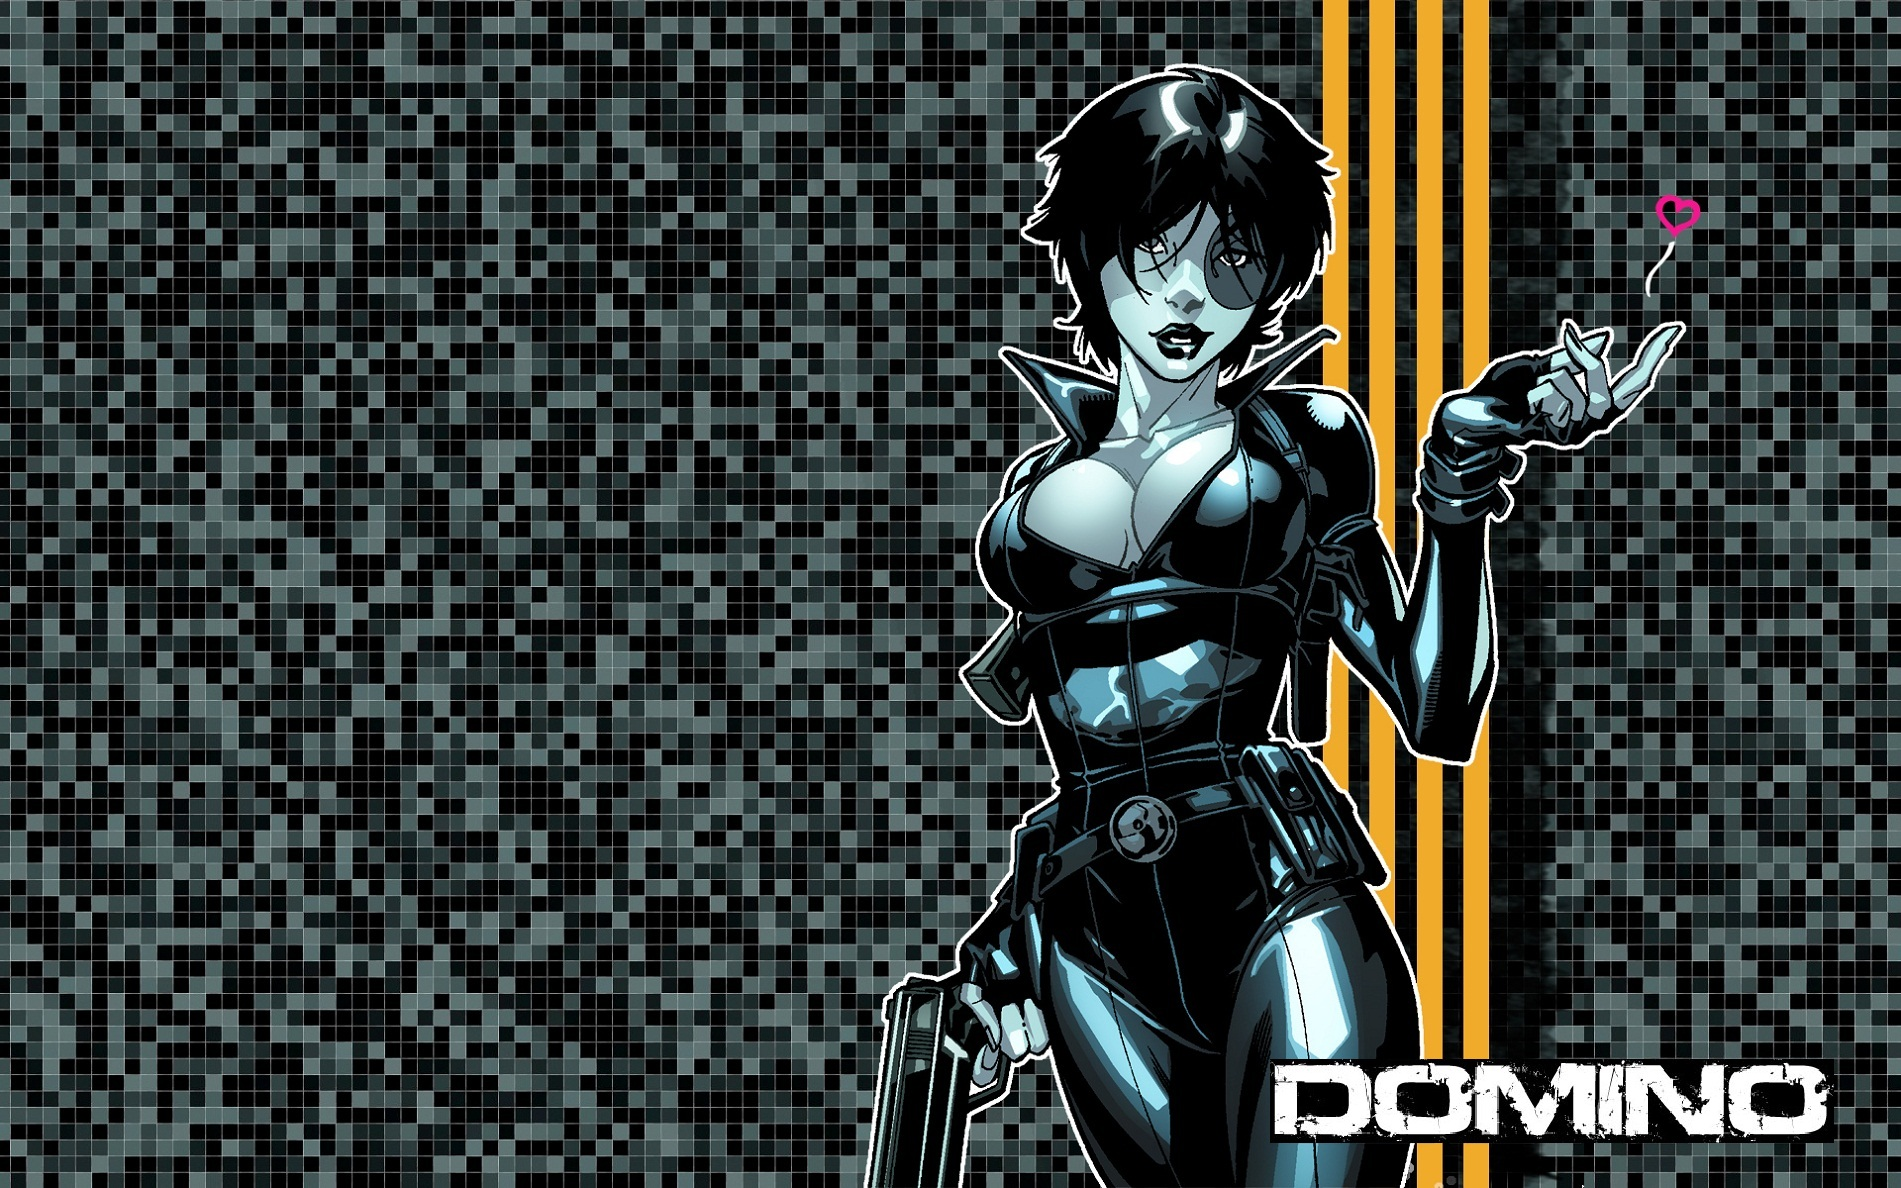 Domino Wallpaper And Background 1901x1188 Id 581525 HD Wallpapers Download Free Images Wallpaper [1000image.com]